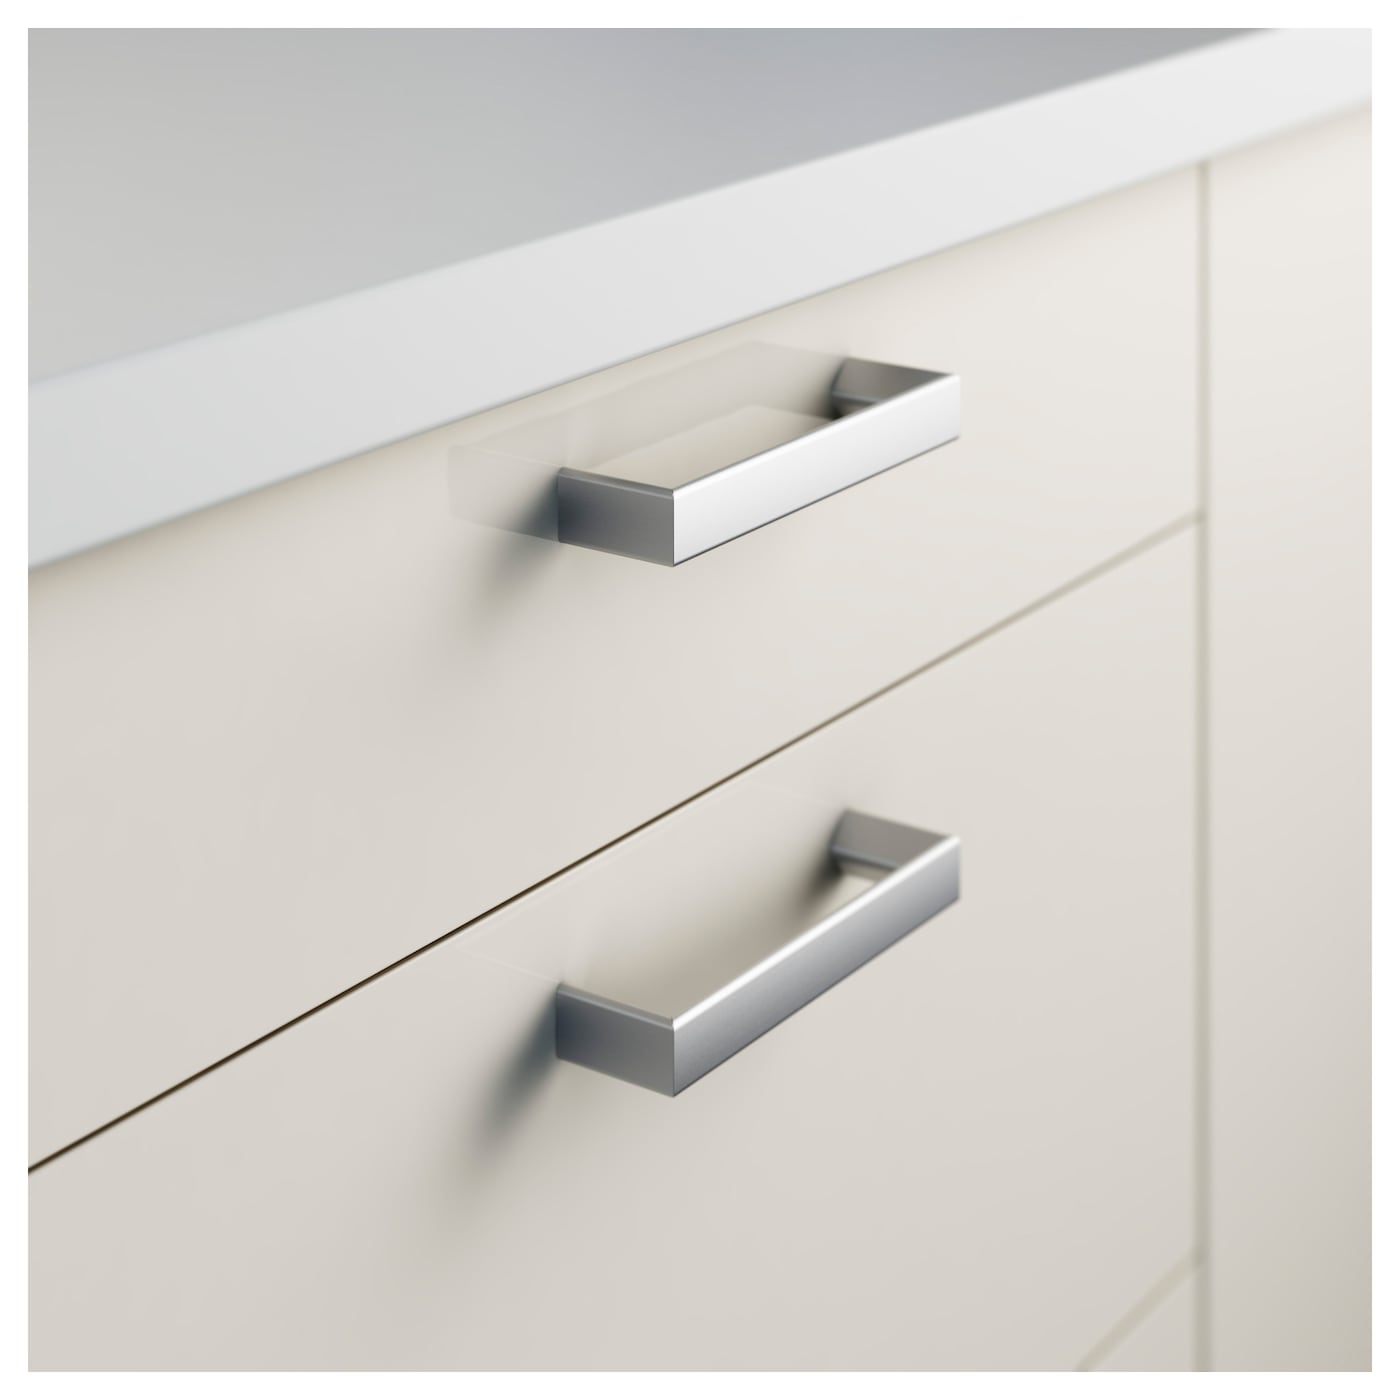 Tyda Handle Stainless Steel 138 Mm Ikea